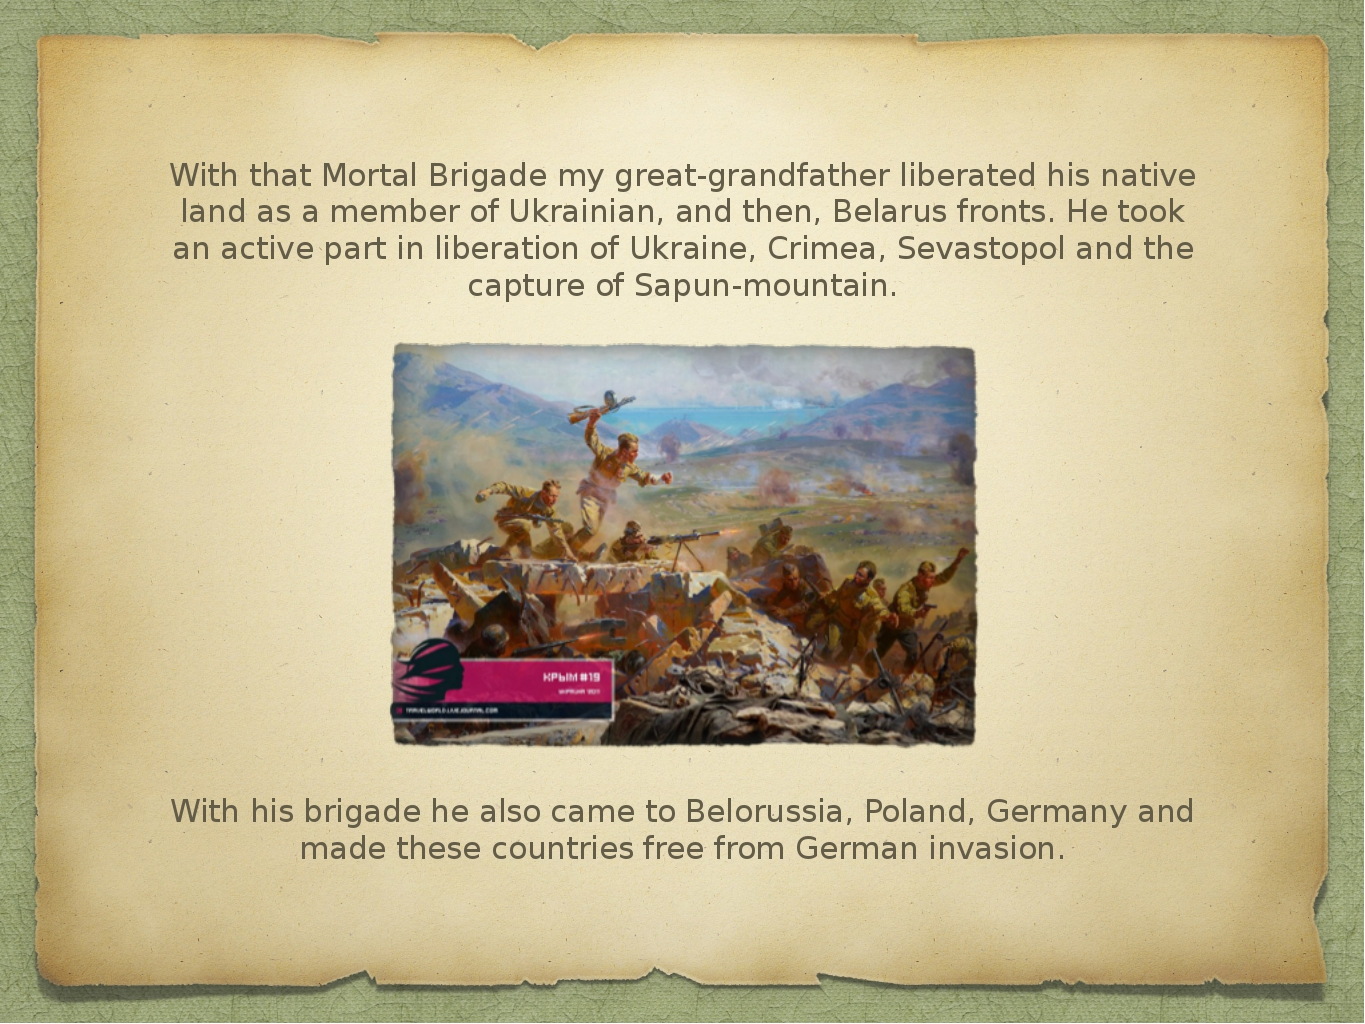 With that Mortal Brigade my great-grandfather liberated his native land as a...